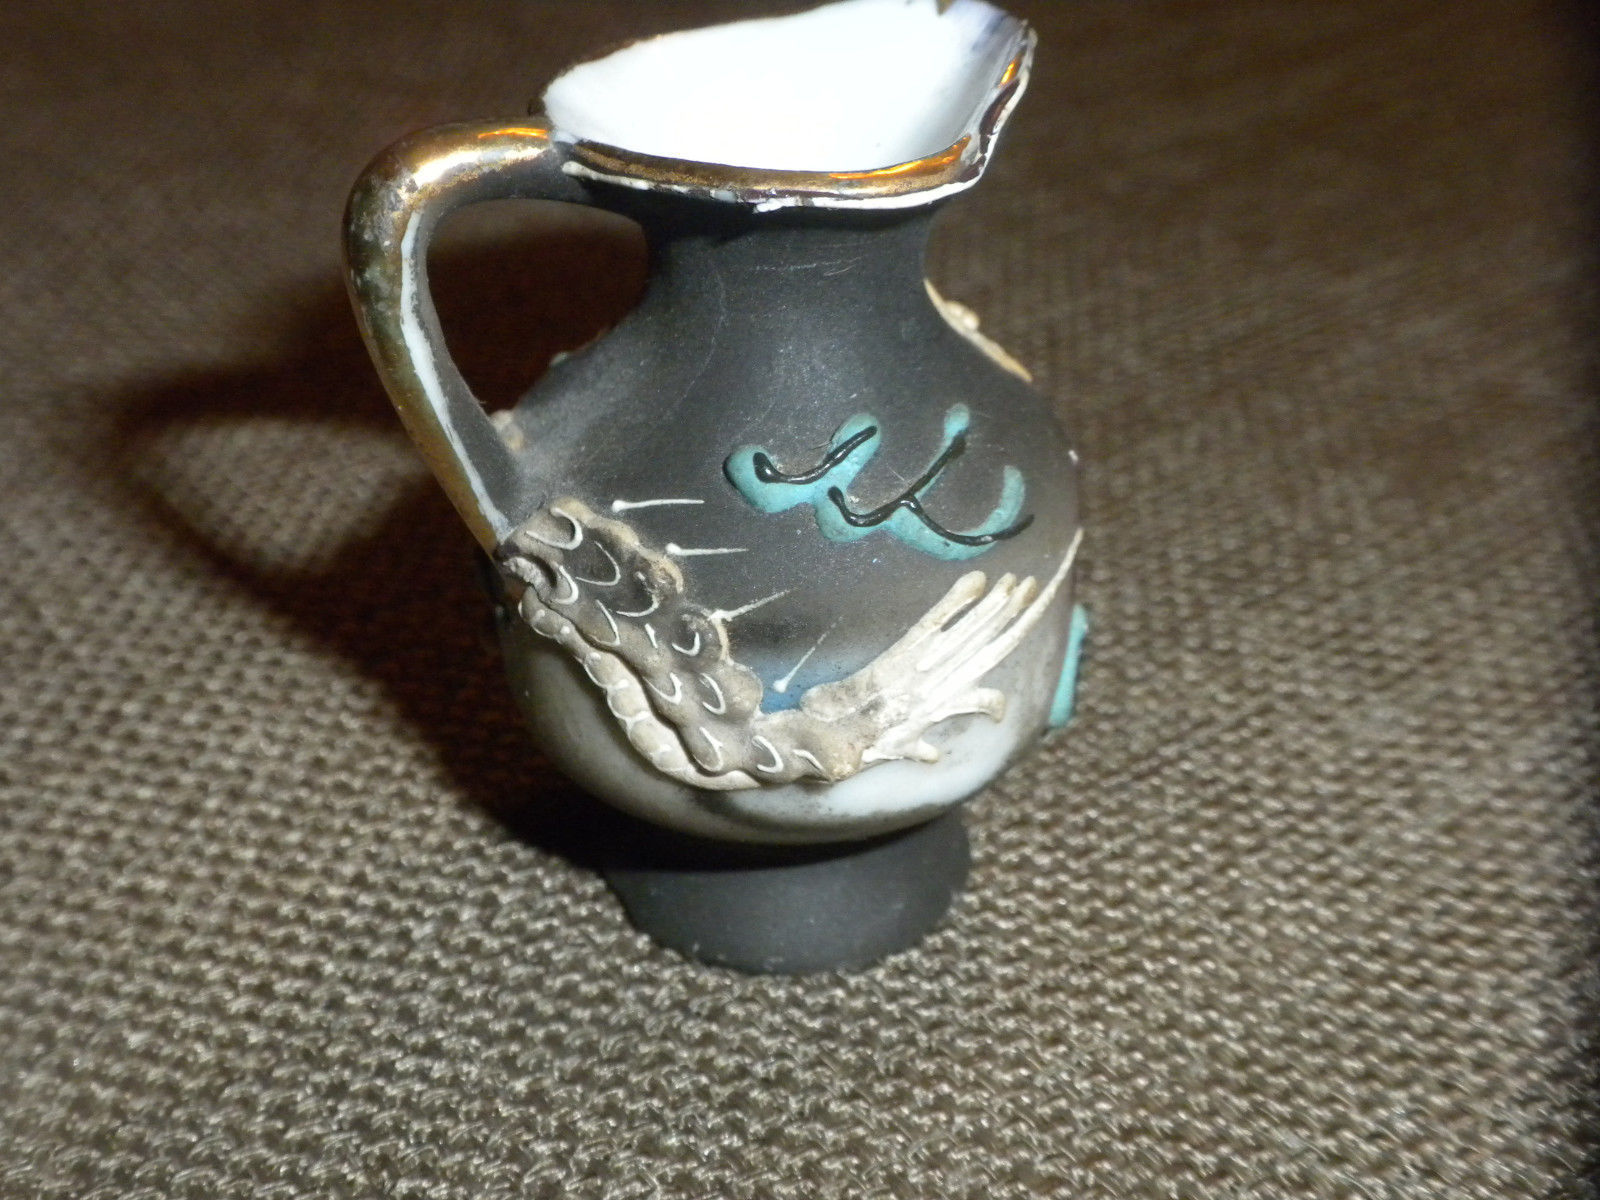 Primary image for Miniature Hand Painted Bisque Pitcher / Jug w Gold trim, raised dragon design